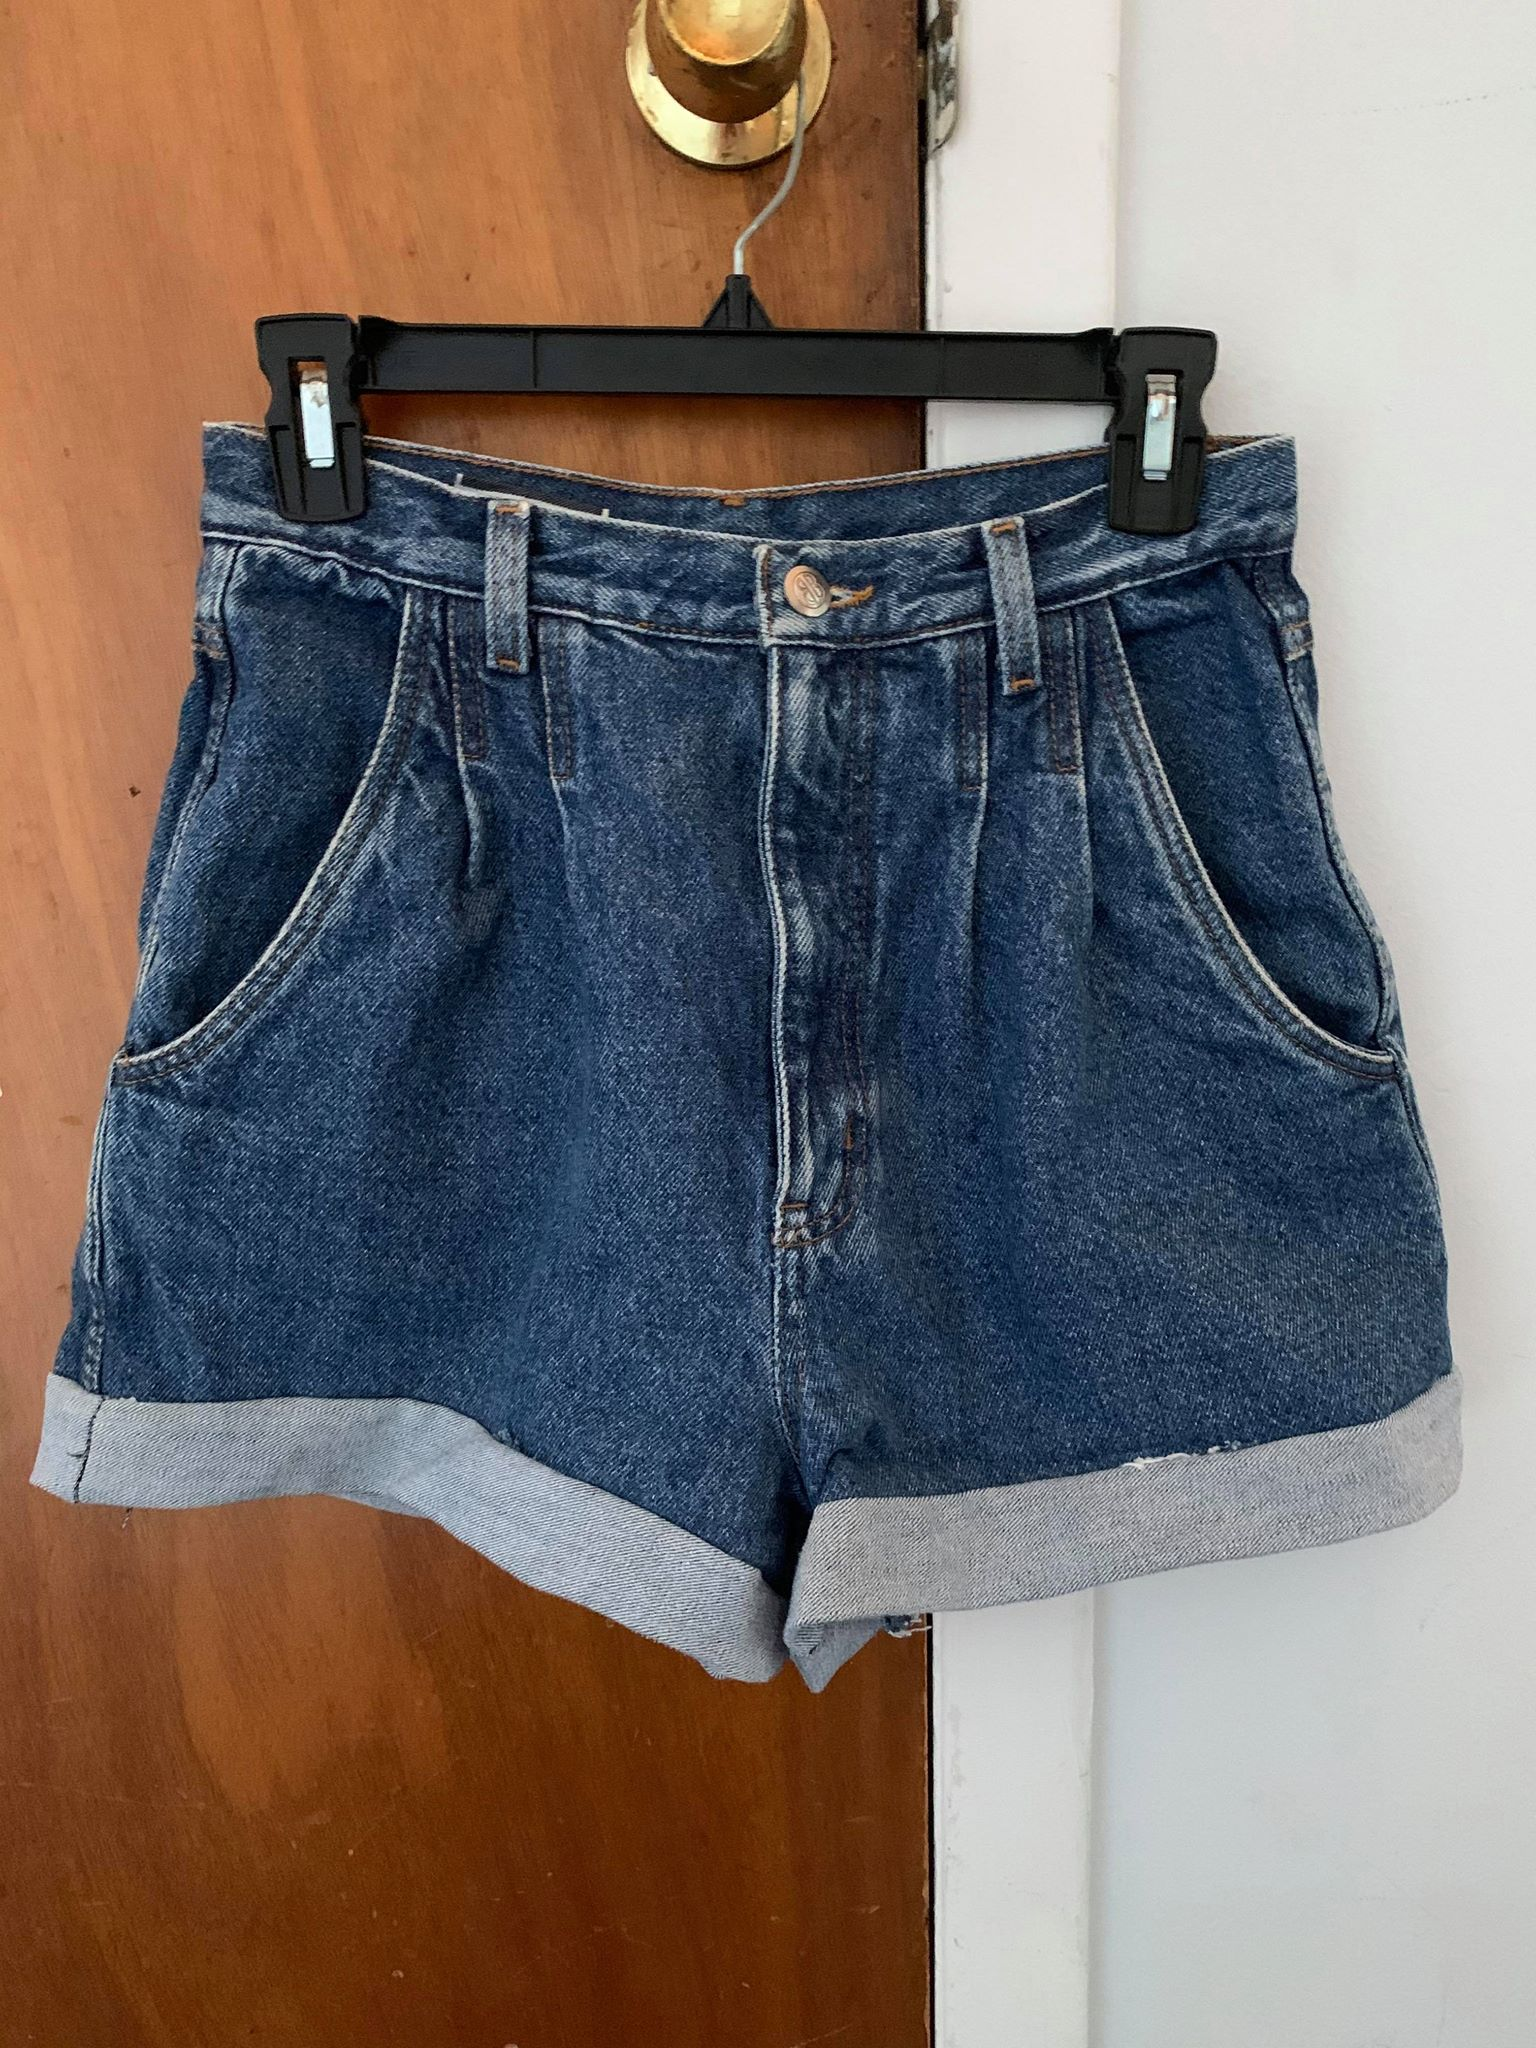 Shorts with a hem added by Slepyan.